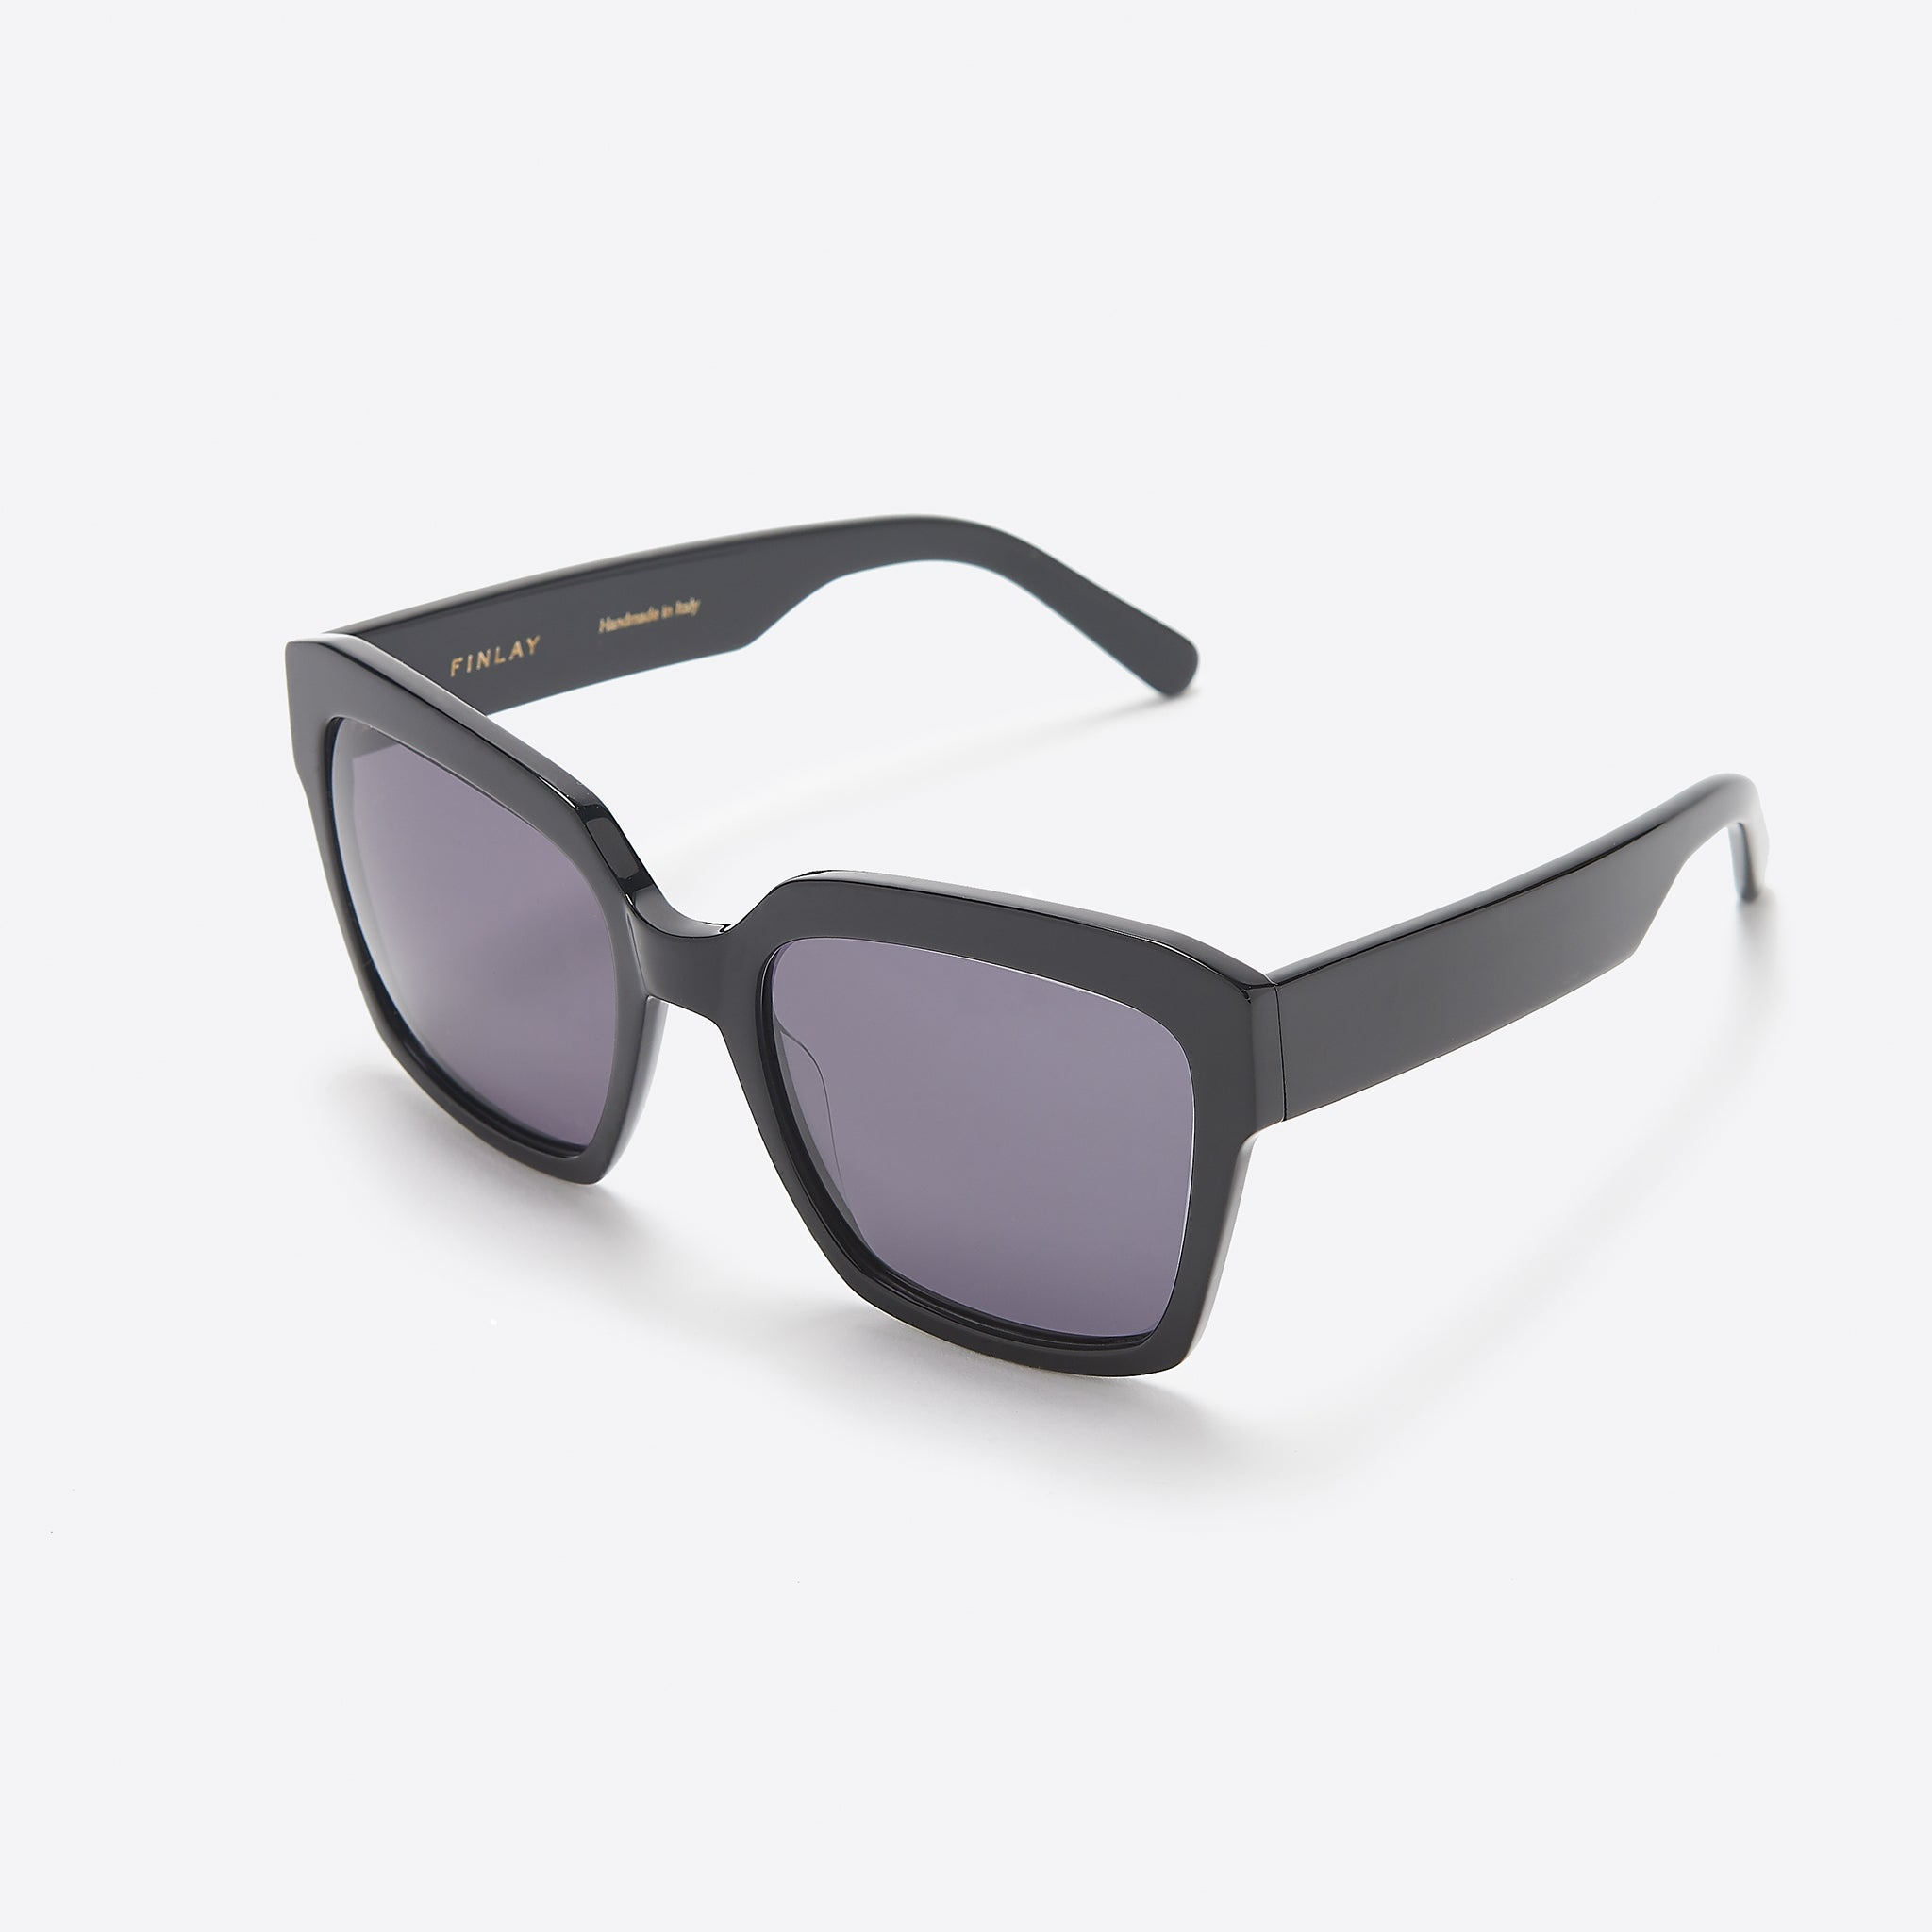 FINLAY London Matilda In Black with Grey Lenses